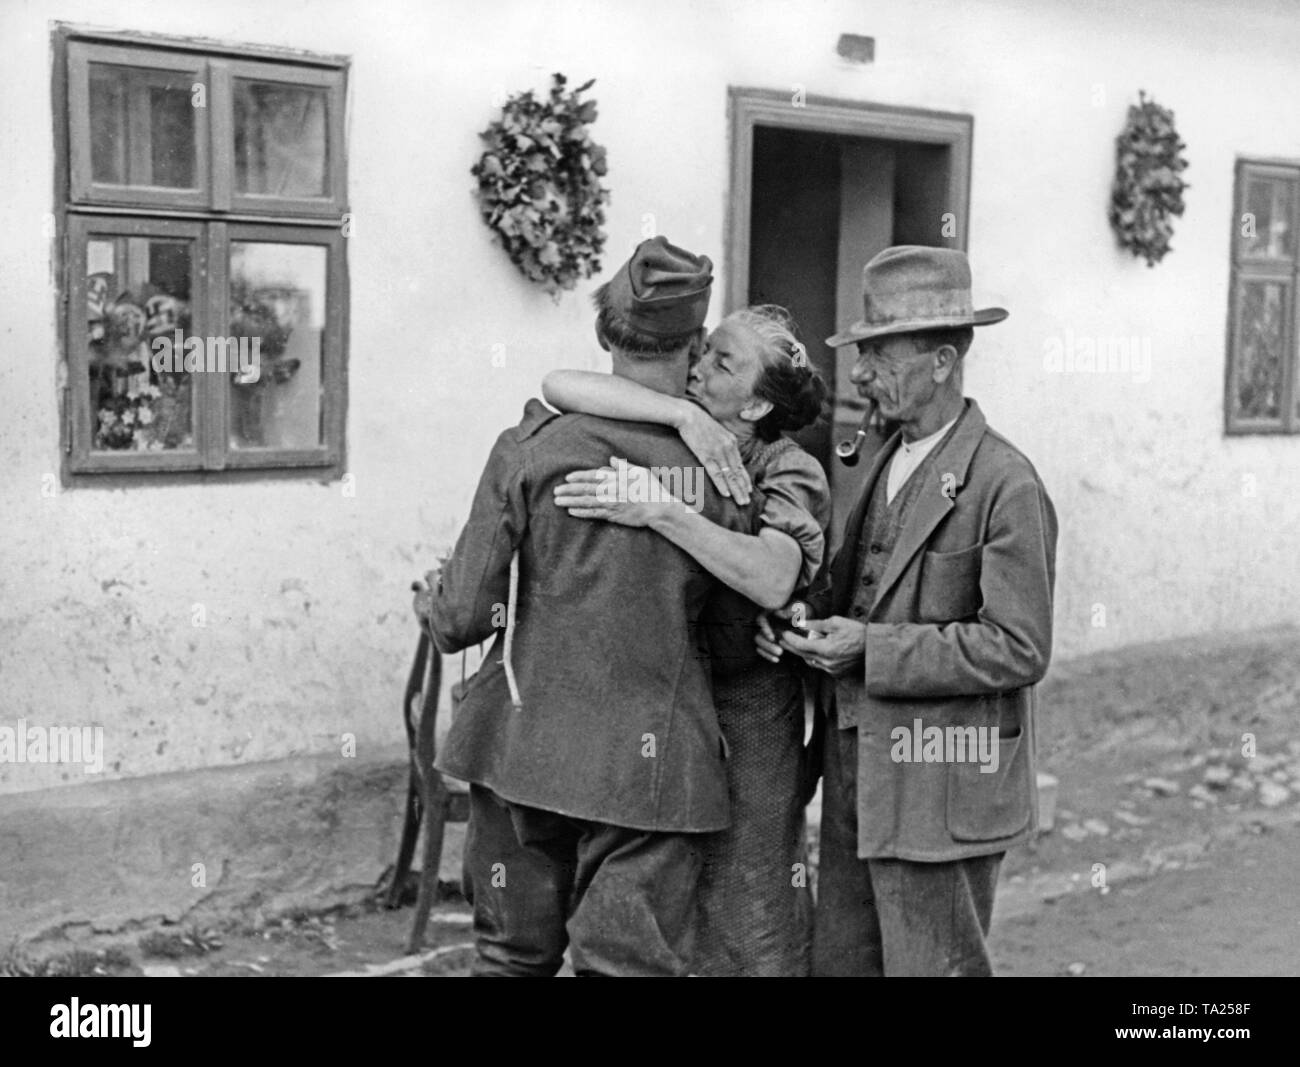 A soldier from the Sudetenland, who was given discharge from the Czech army, is greeted by his parents on his return home on October 9, 1938. In the window on the left, small swastika flags. - Stock Image